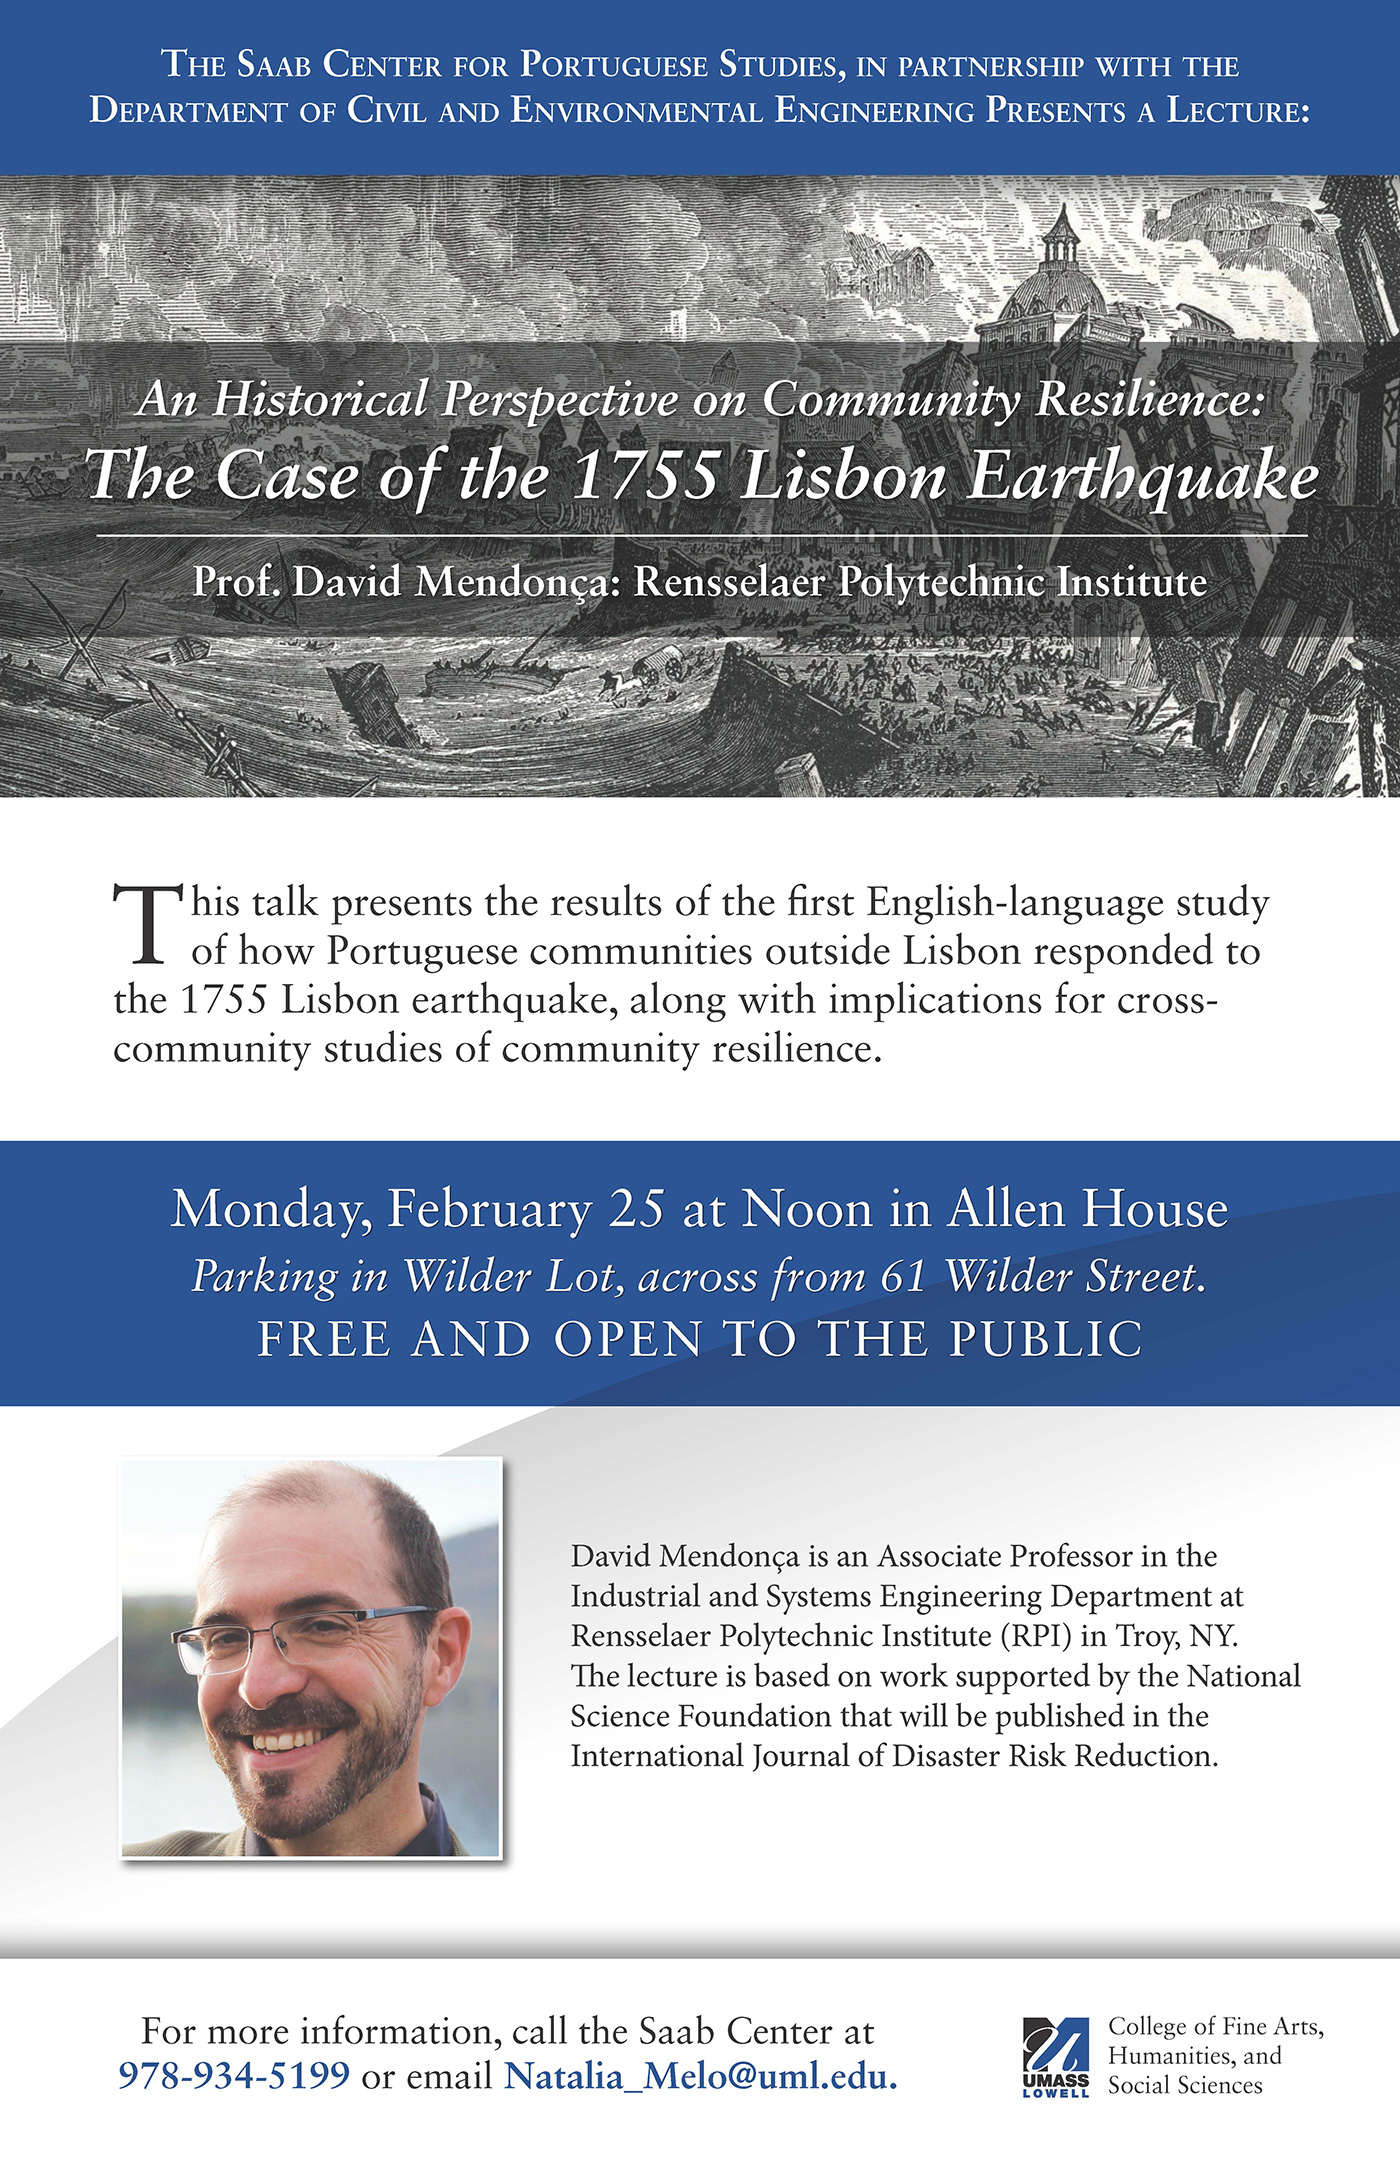 Poster for The Case of the 1755 Lisbon Earthquake Lecture - An Historical Perspective on Community Resilience: The Case of the 1755 Lisbon Earthquake by Prof. David Mendonça: Rensselaer Polytechnic Institute on Monday, February 25, 2019 at Noon at UMass Lowell's Allen House.